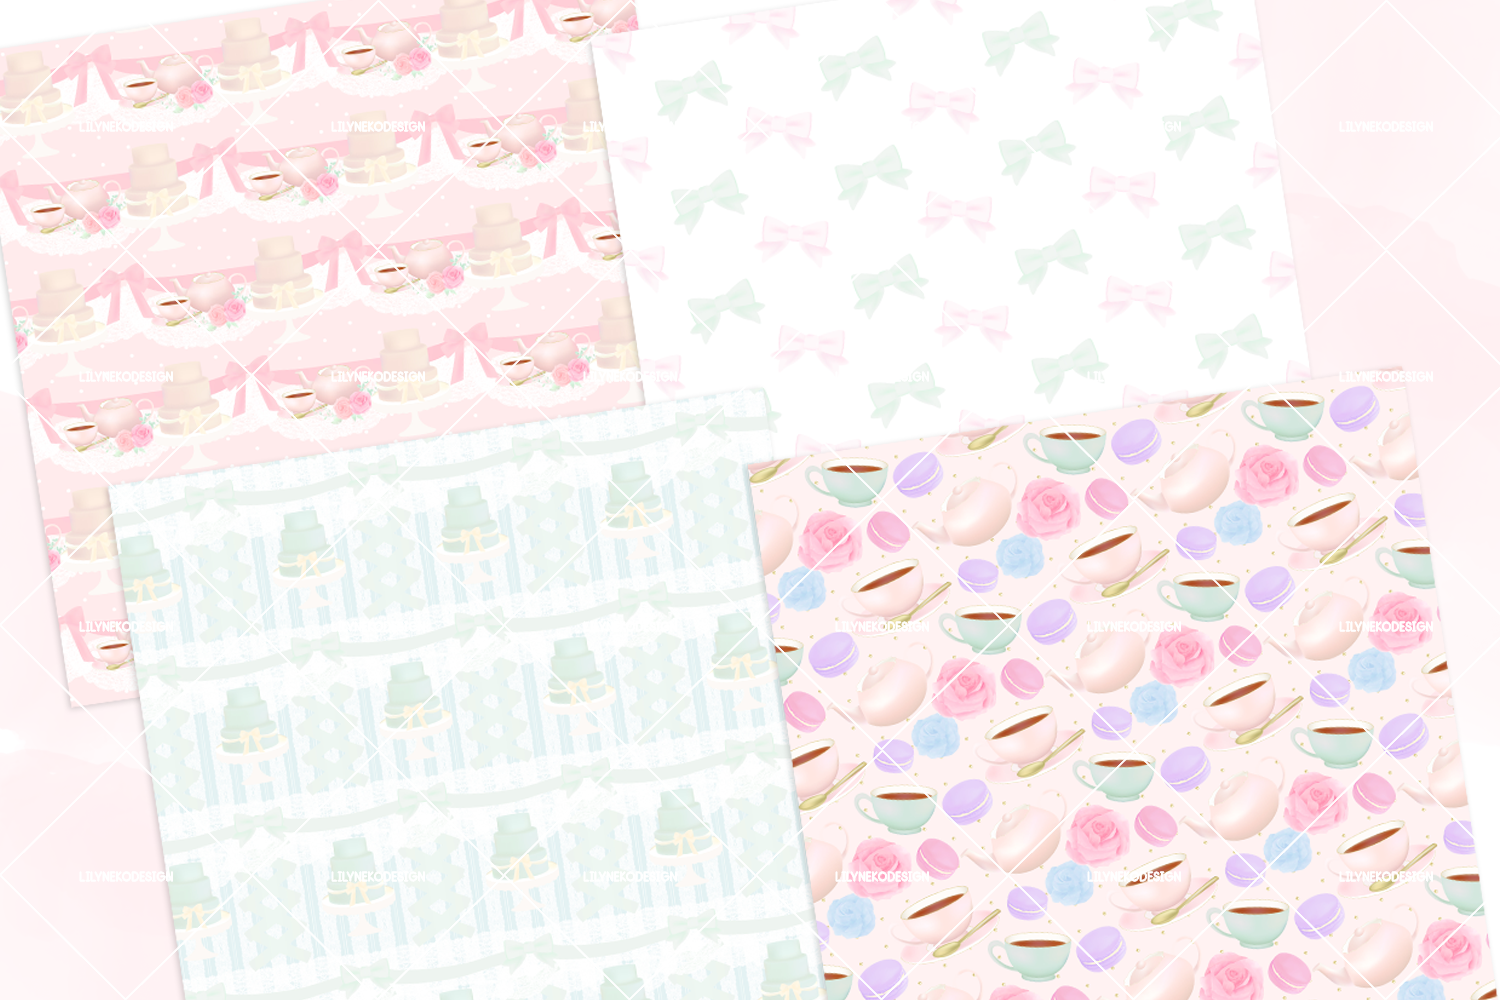 Macaron Afternoon Tea party Pattern Digital Papers example image 3